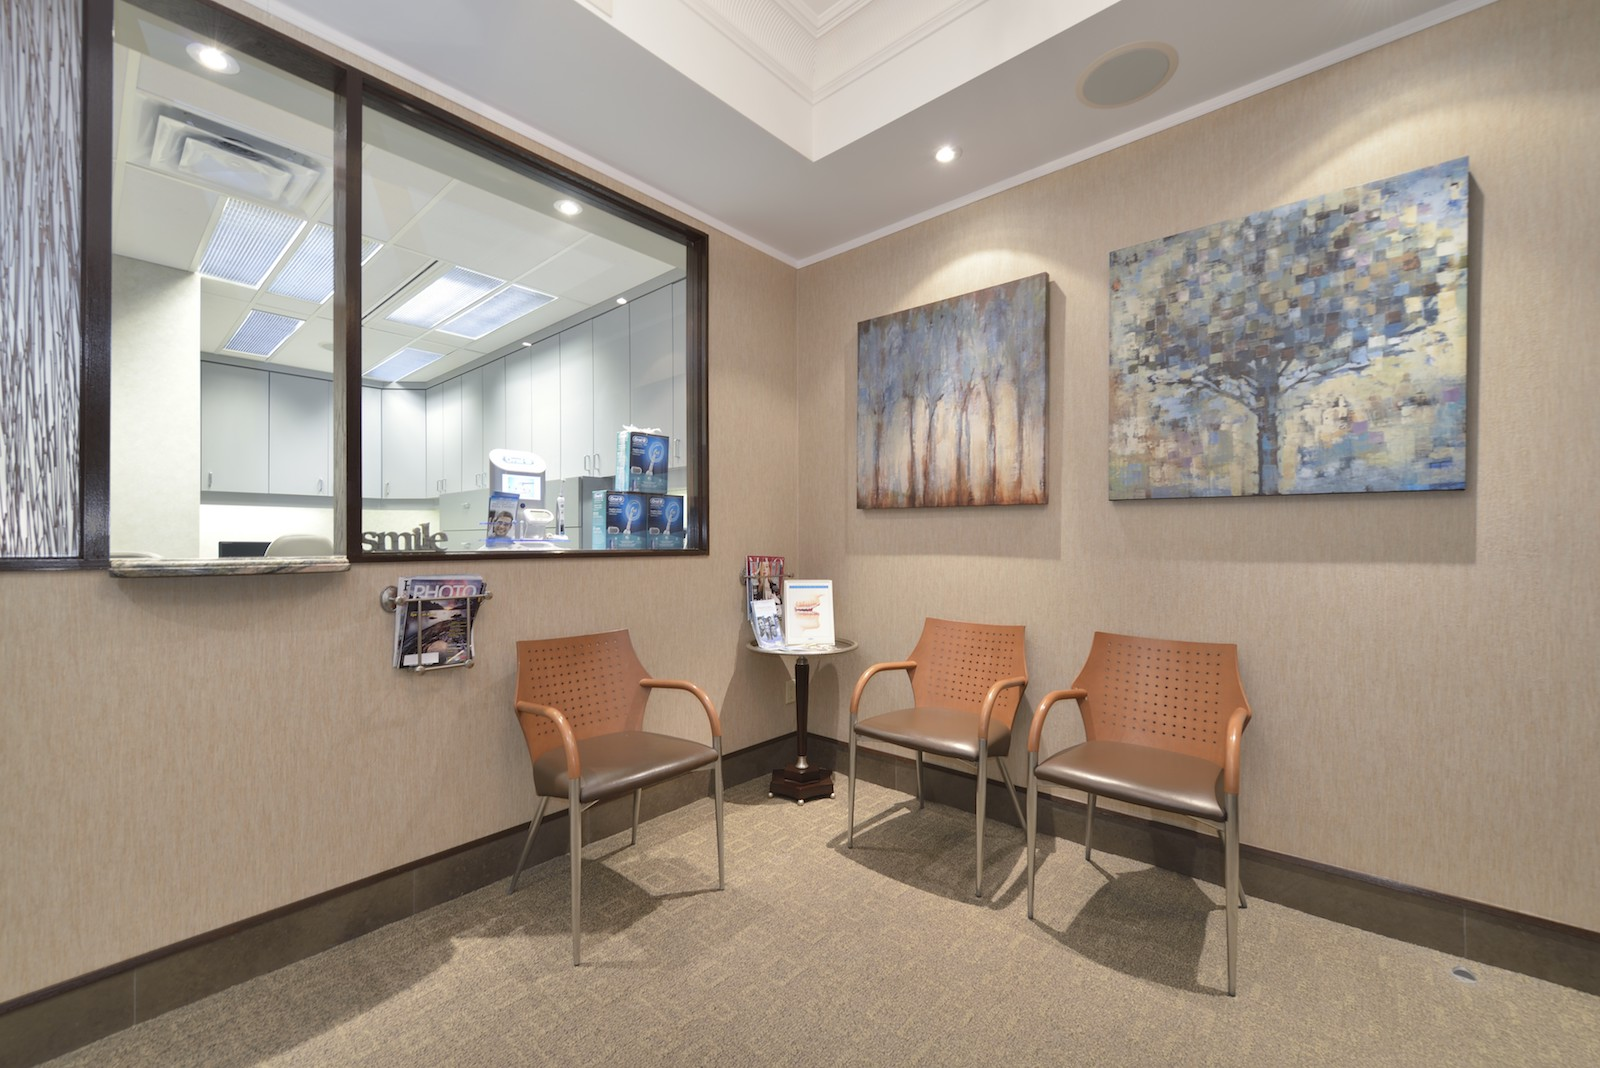 Entry | Dentist North York, ON | Sari Novack Dentistry